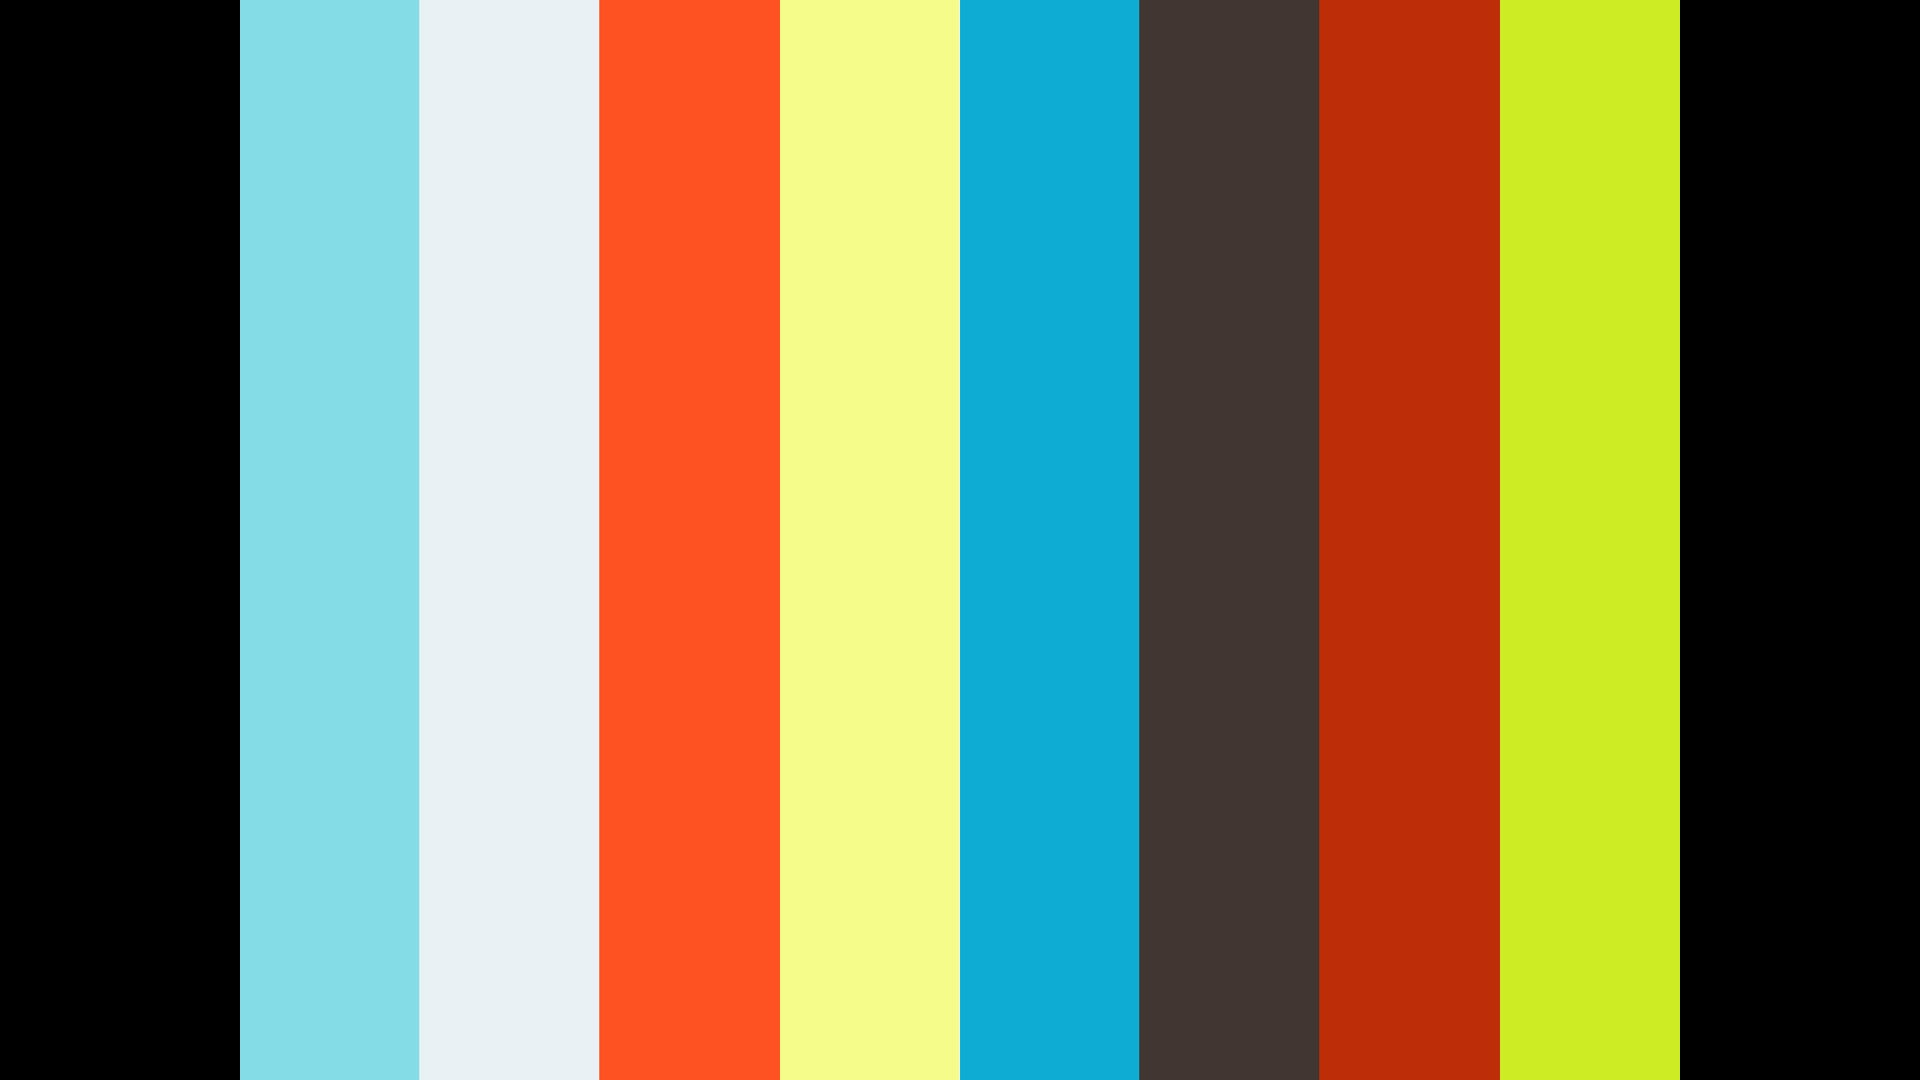 GG_StoneFit_System Edit 1-Vimeo Export